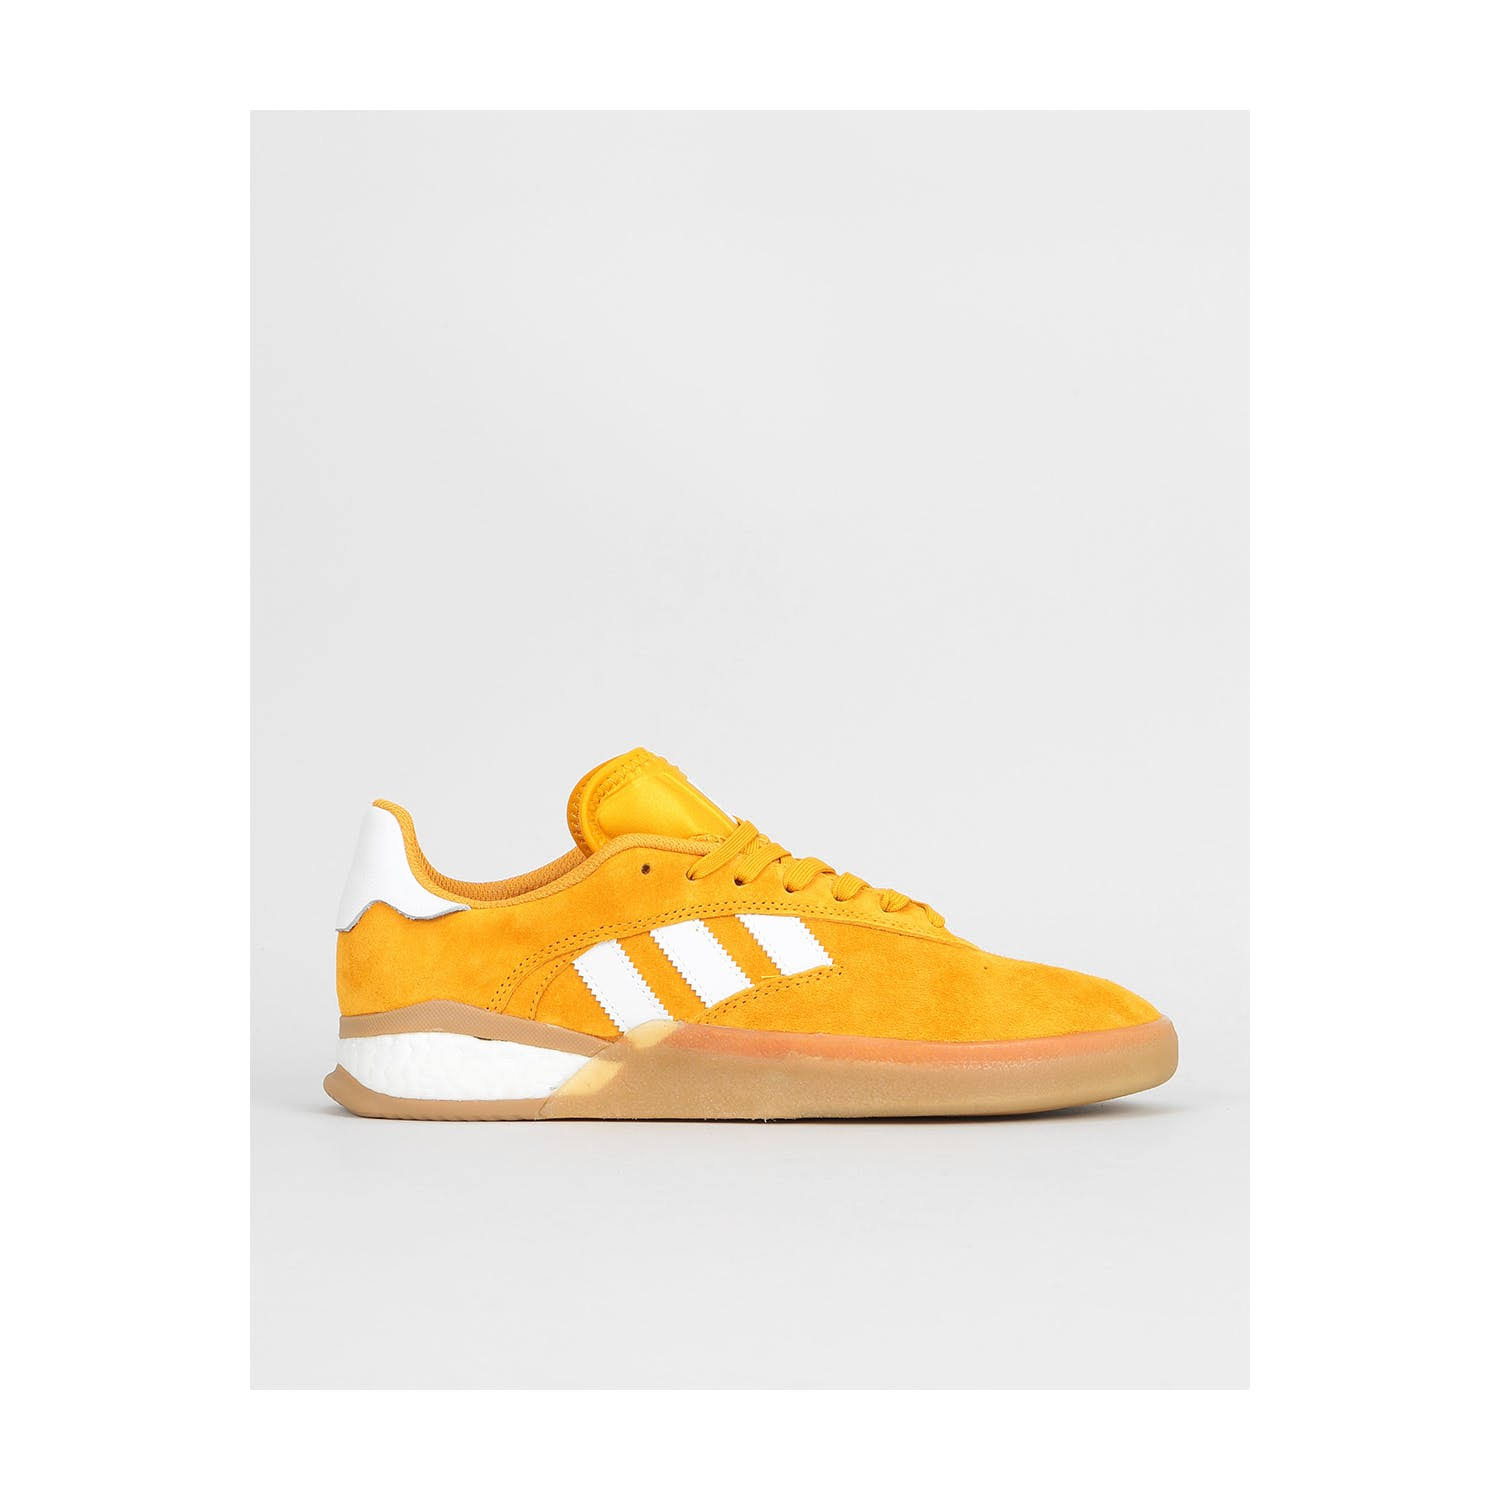 Adidas 3ST.004 Shoes Yellow White Gum